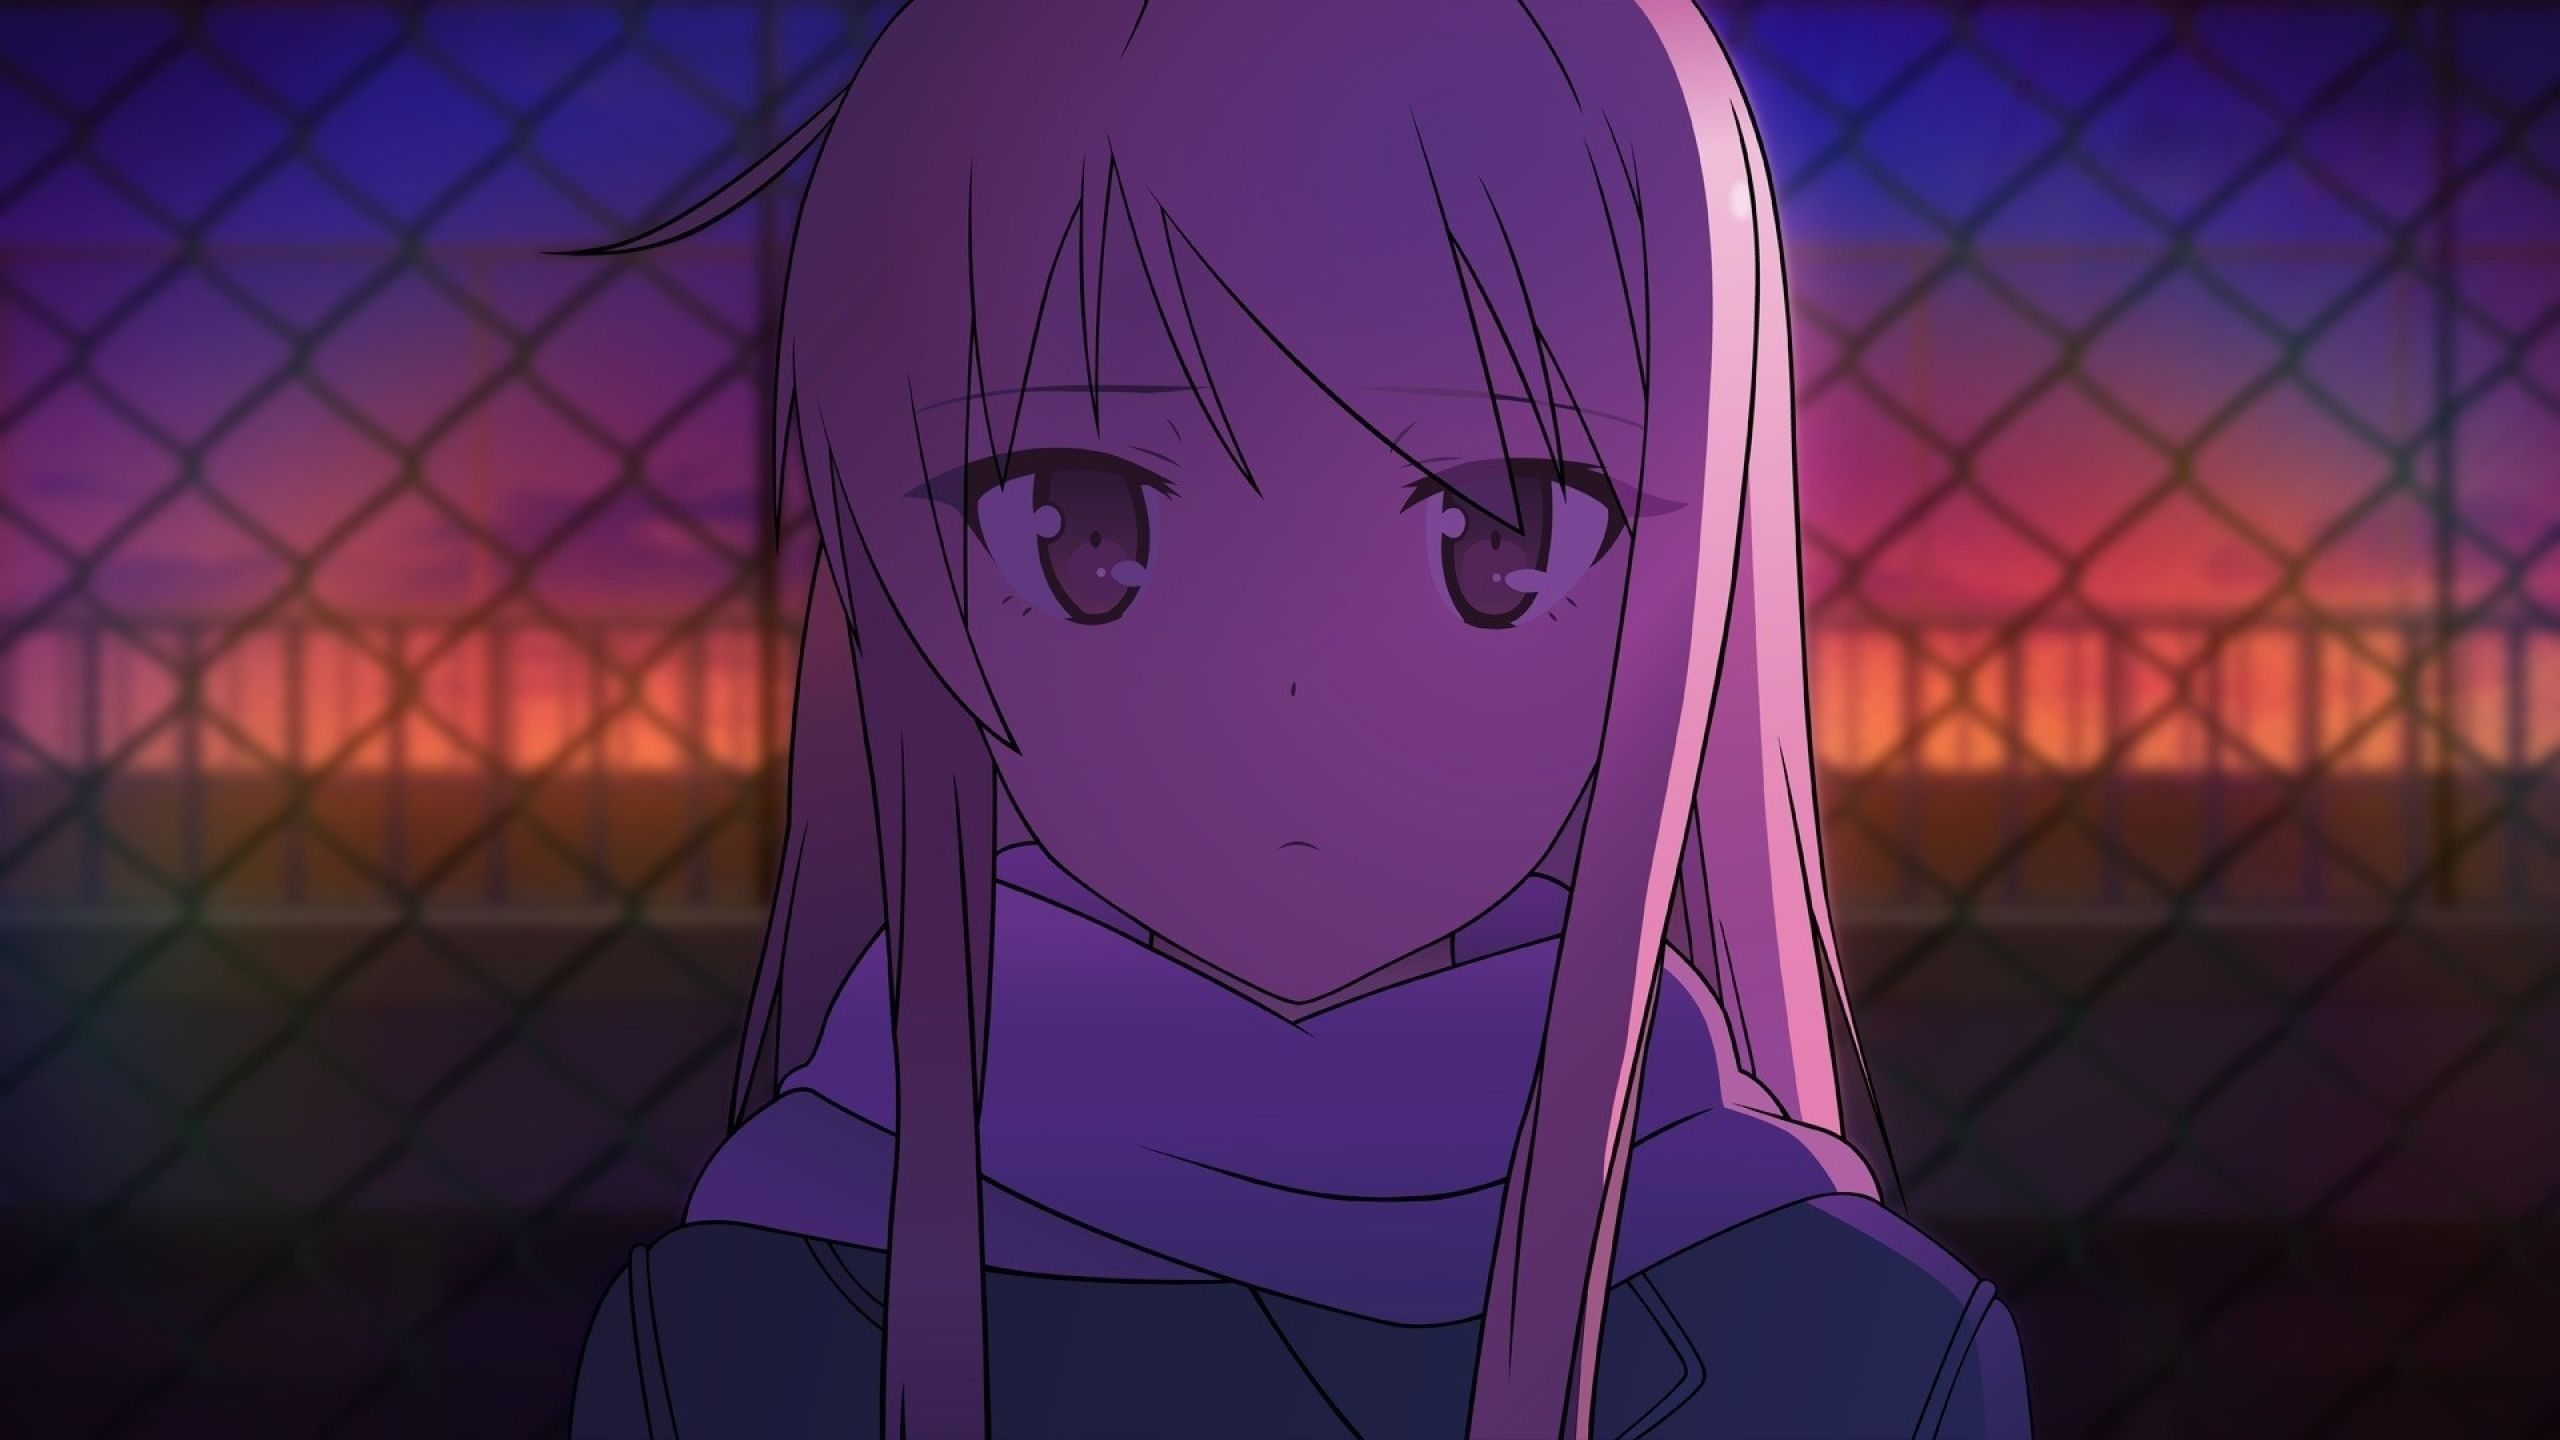 Anime Sakurasou No Pet Na Kanojo Mashiro Shiina Wallpaper